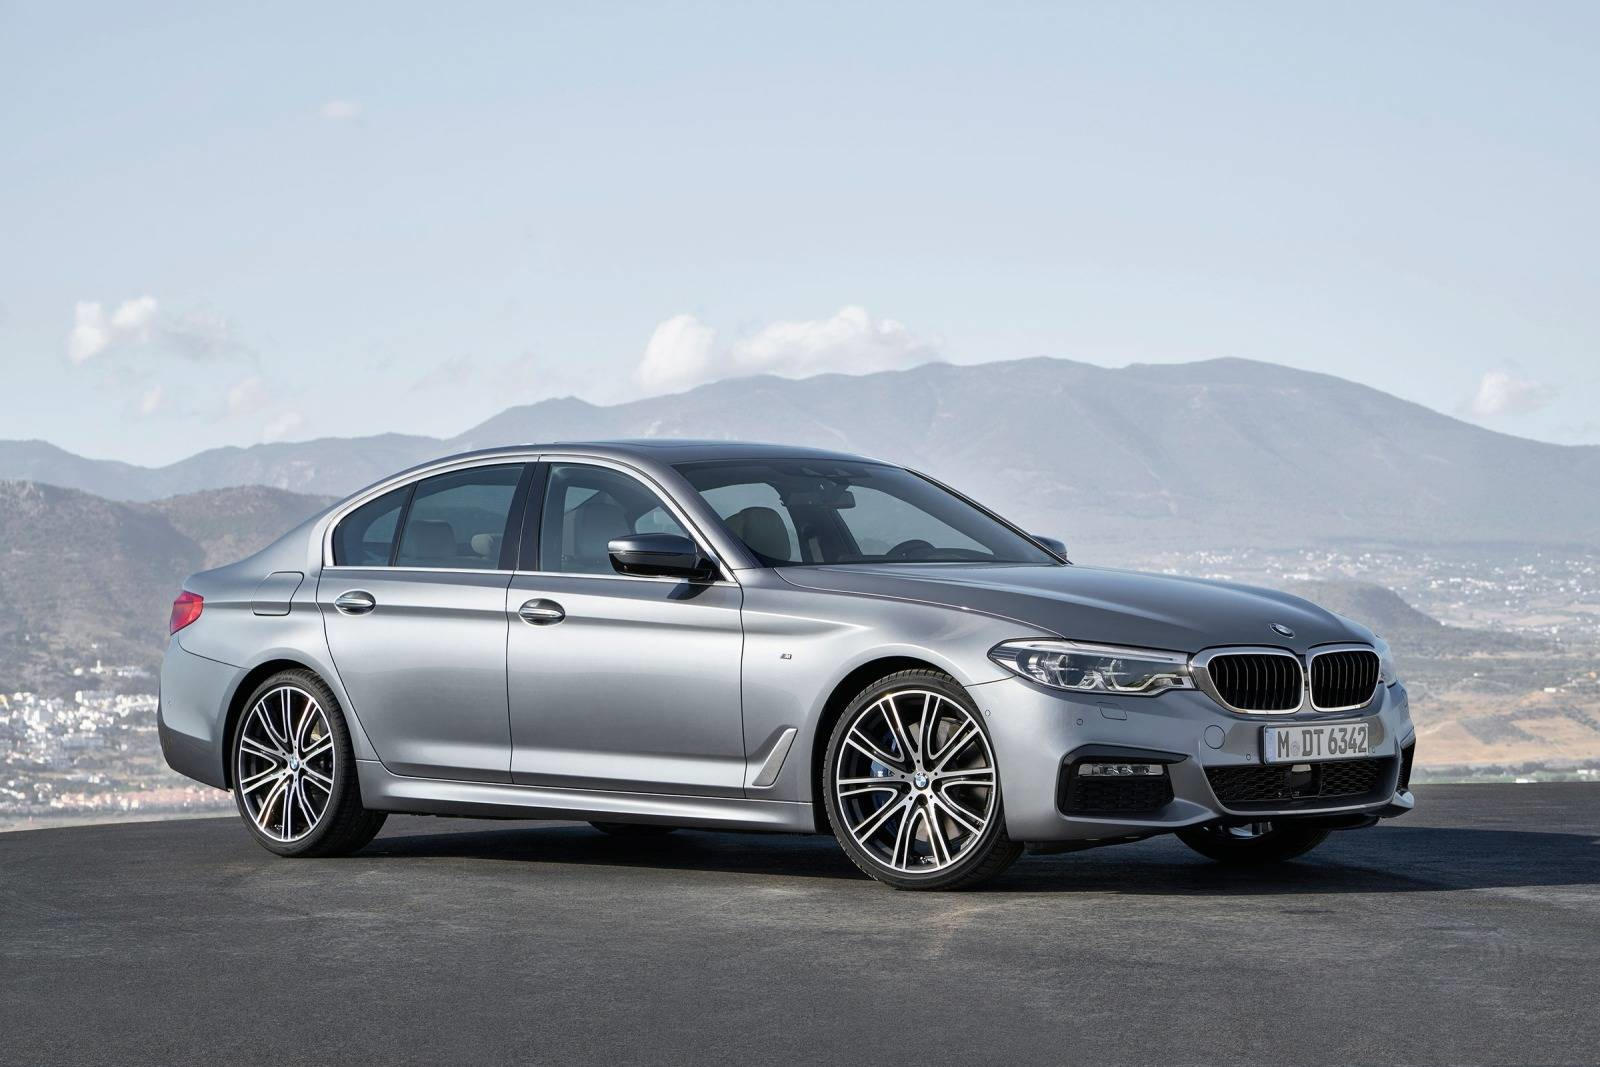 2020 Bmw 5 Series Sedan Review New Model Bmw 5 Series Generations Price Trims Specs Ratings In Usa Carbuzz